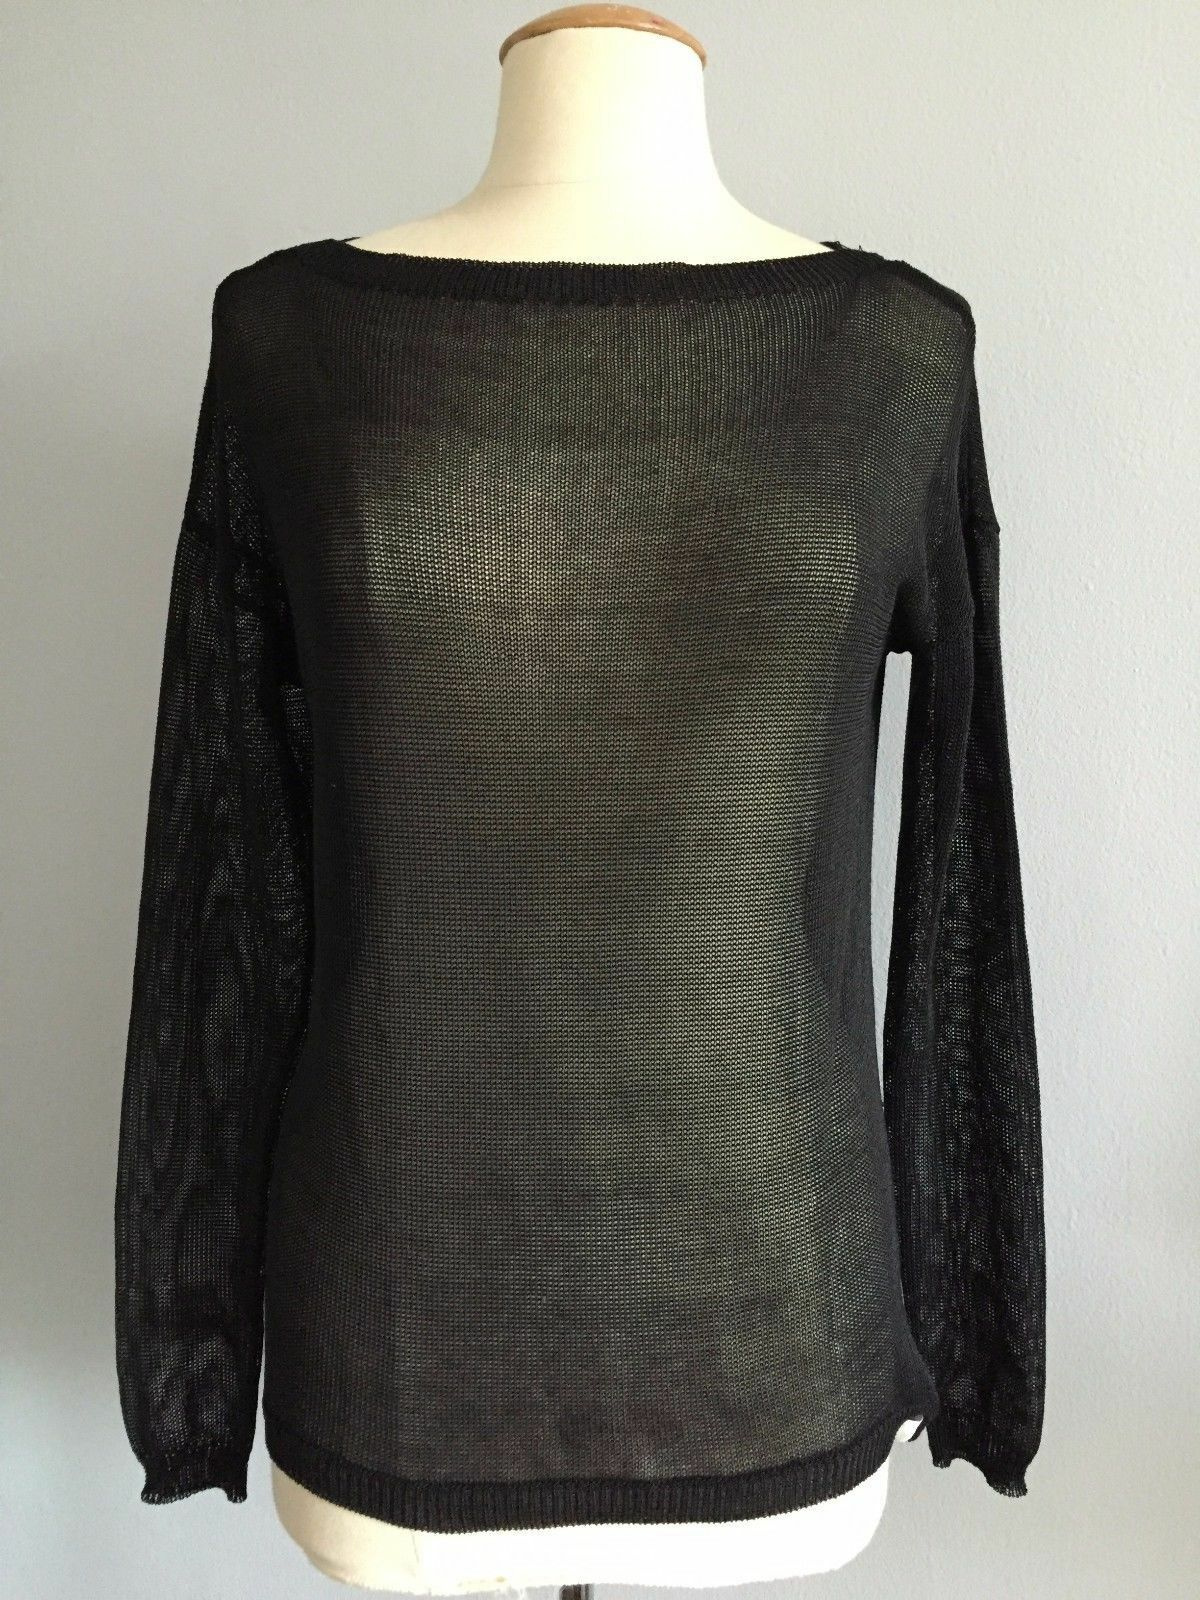 NWT  Ralph Lauren schwarz Label Sheer Knit Cotton Blend Hi Lo Hem Sweater S